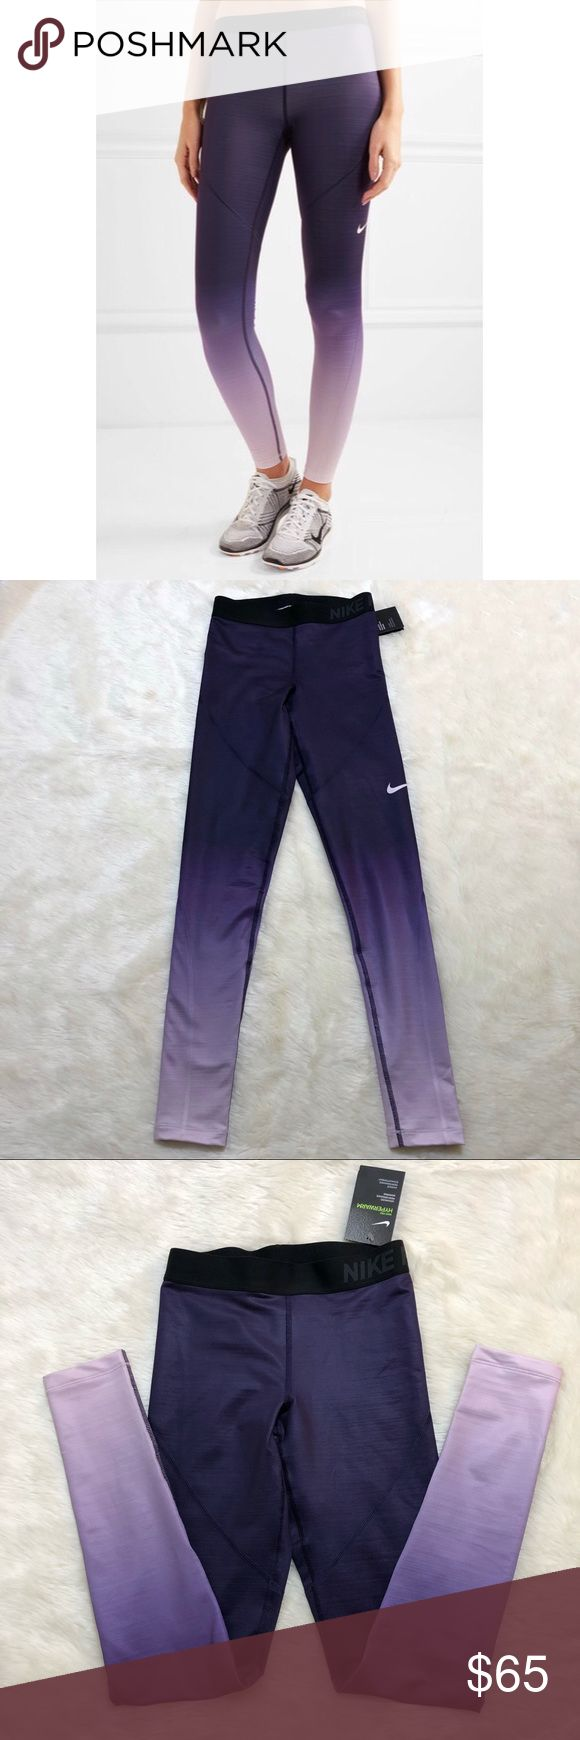 """NWT -Nike Pro Hyperwarm Ombré Leggings XS NWT - Perfect retail condition.   Developed for cooler weather workouts, Nike's 'Pro Hyperwarm' leggings are cut from body-skimming stretch-jersey and printed with a purple and lilac ombré effect. Thanks to the brand's Dri-FIT technology, this moisture-wicking pair will to keep you dry and comfortable during workouts.   Rise:8"""" Inseam : 28"""" Nike Pants Leggings"""